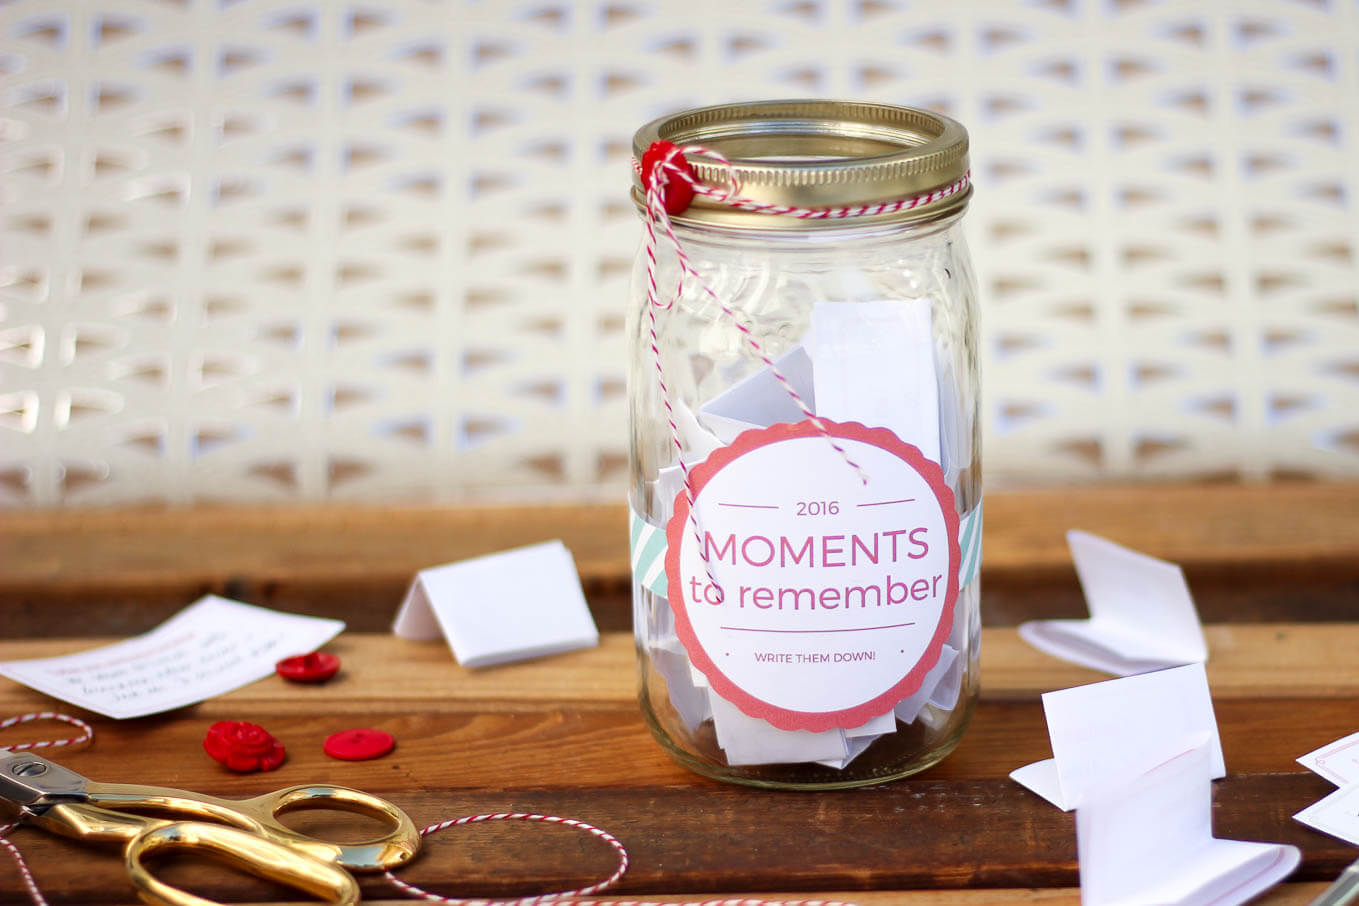 diy memory jar tutorial a great alternative to keeping a daily journal includes